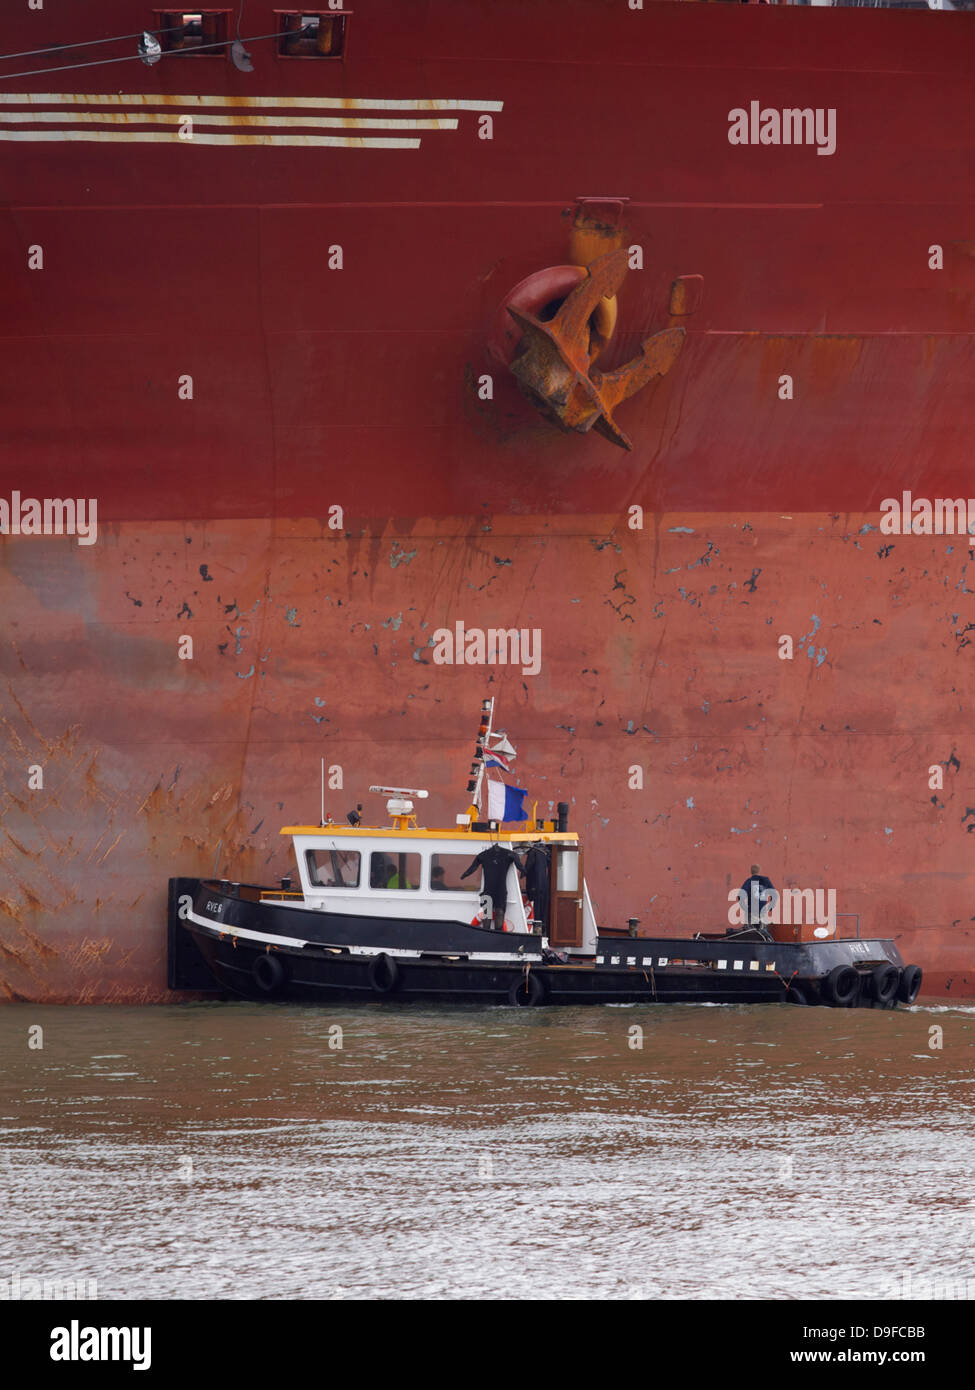 Small boat next to an anchor of the Berge Stahl, one of the largest bulkcarriers in the world. Port of Rotterdam - Stock Image